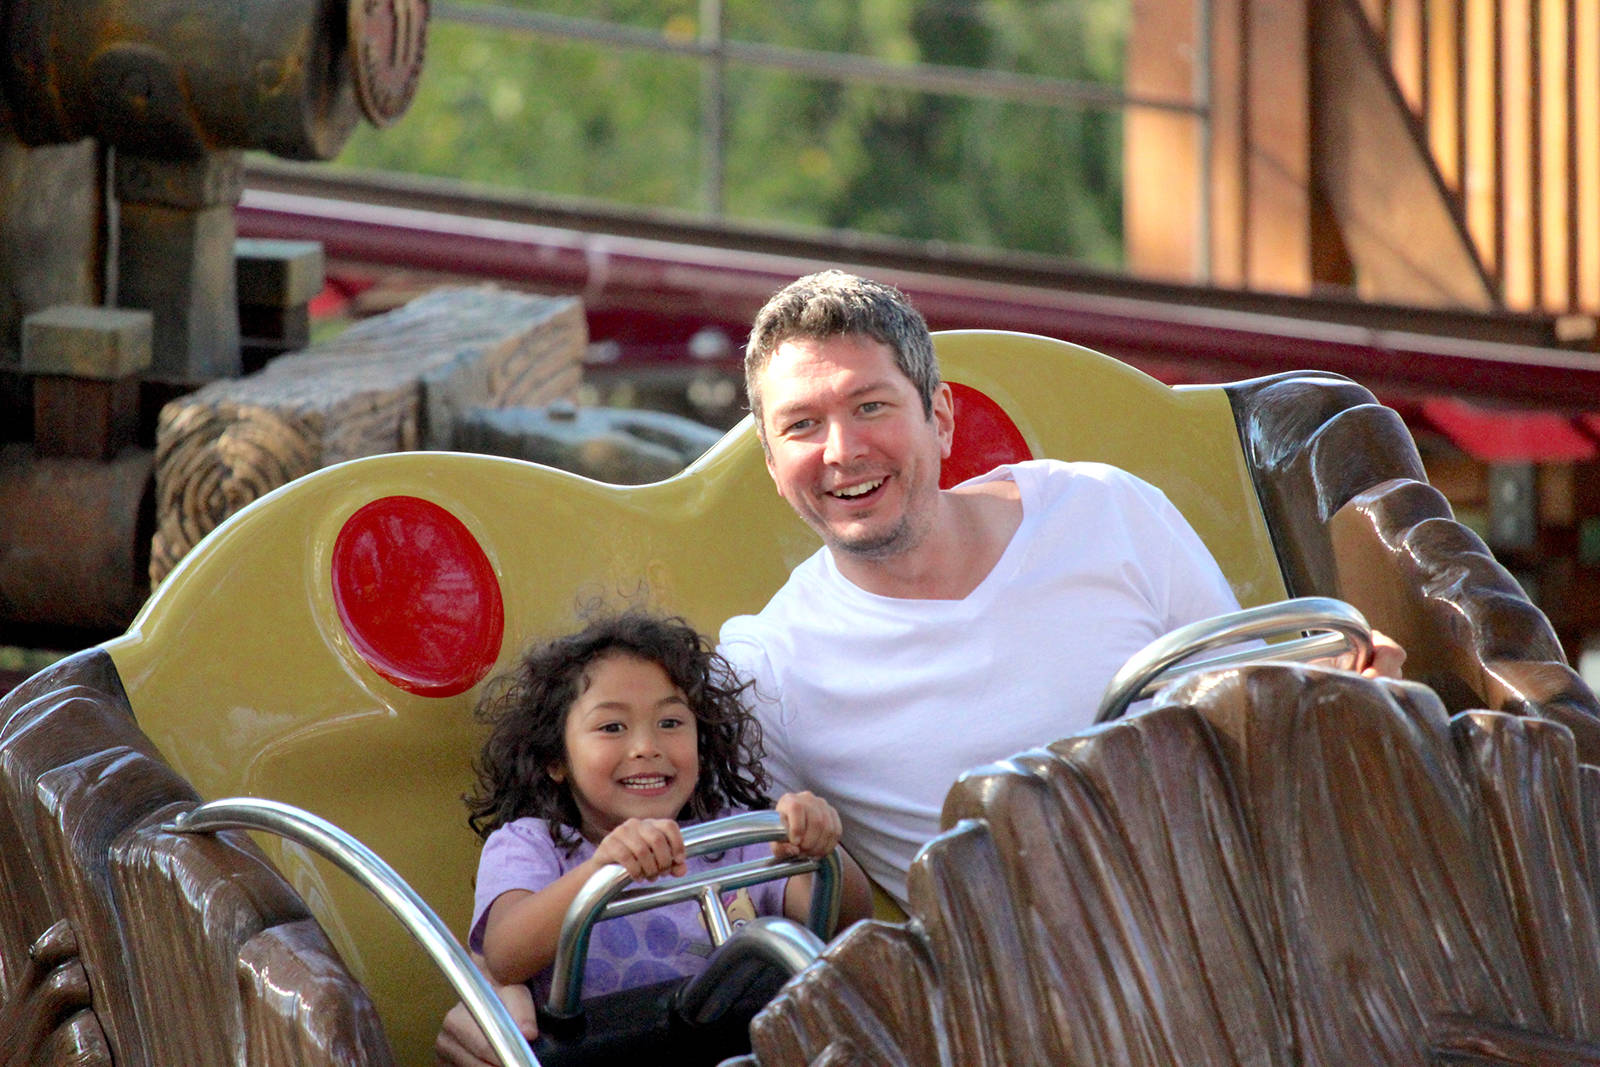 All ages find plenty of fun at Cultus Lake Adventure Park.